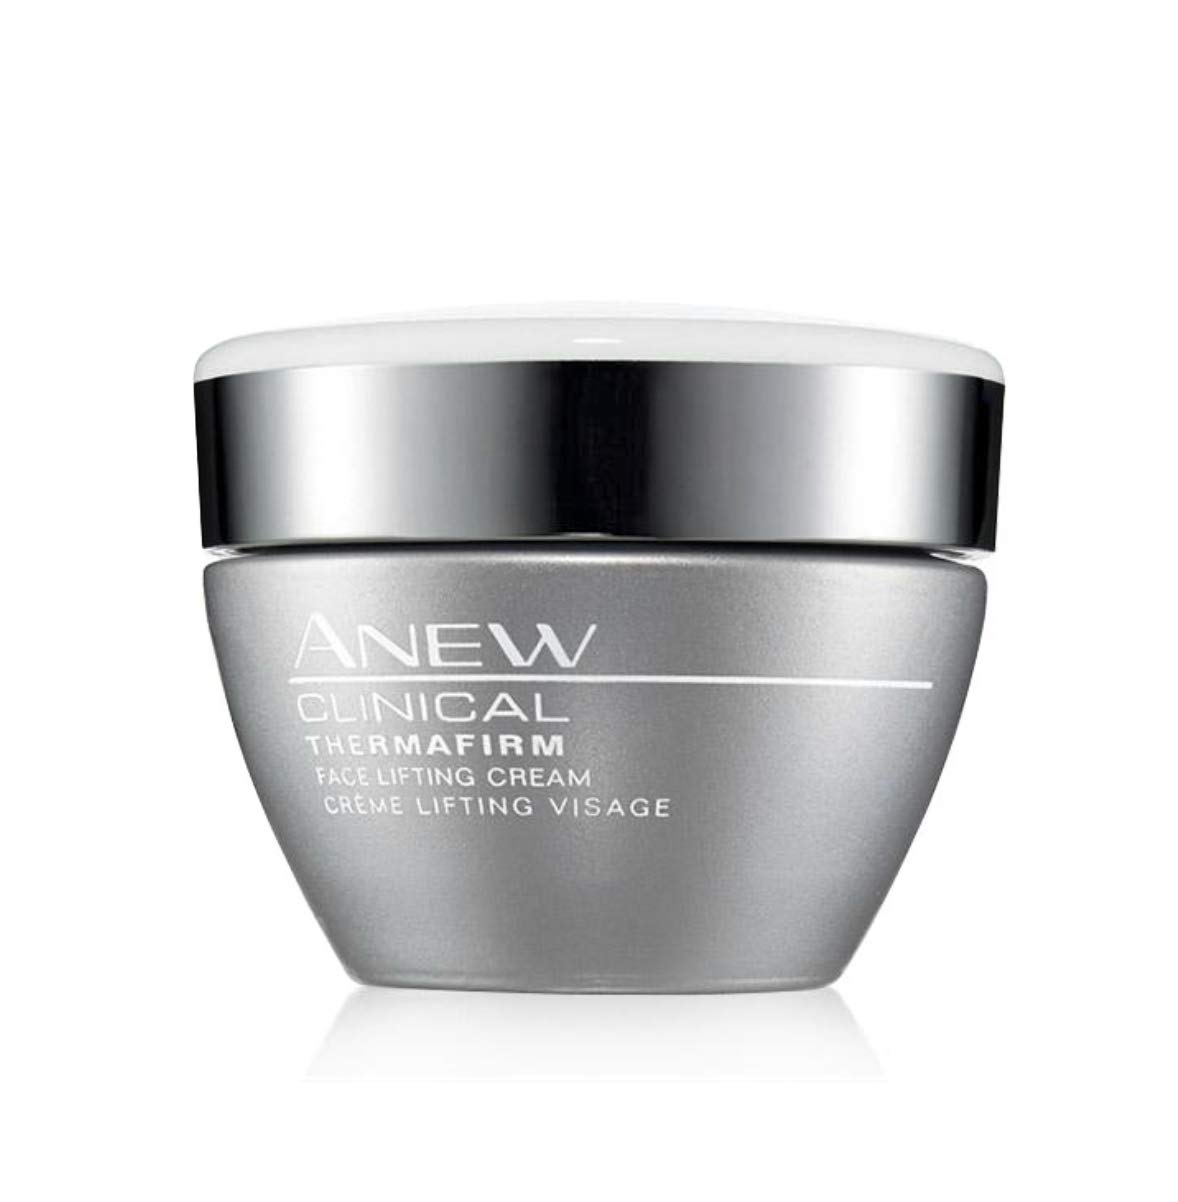 Anew Clinical Thermafirm